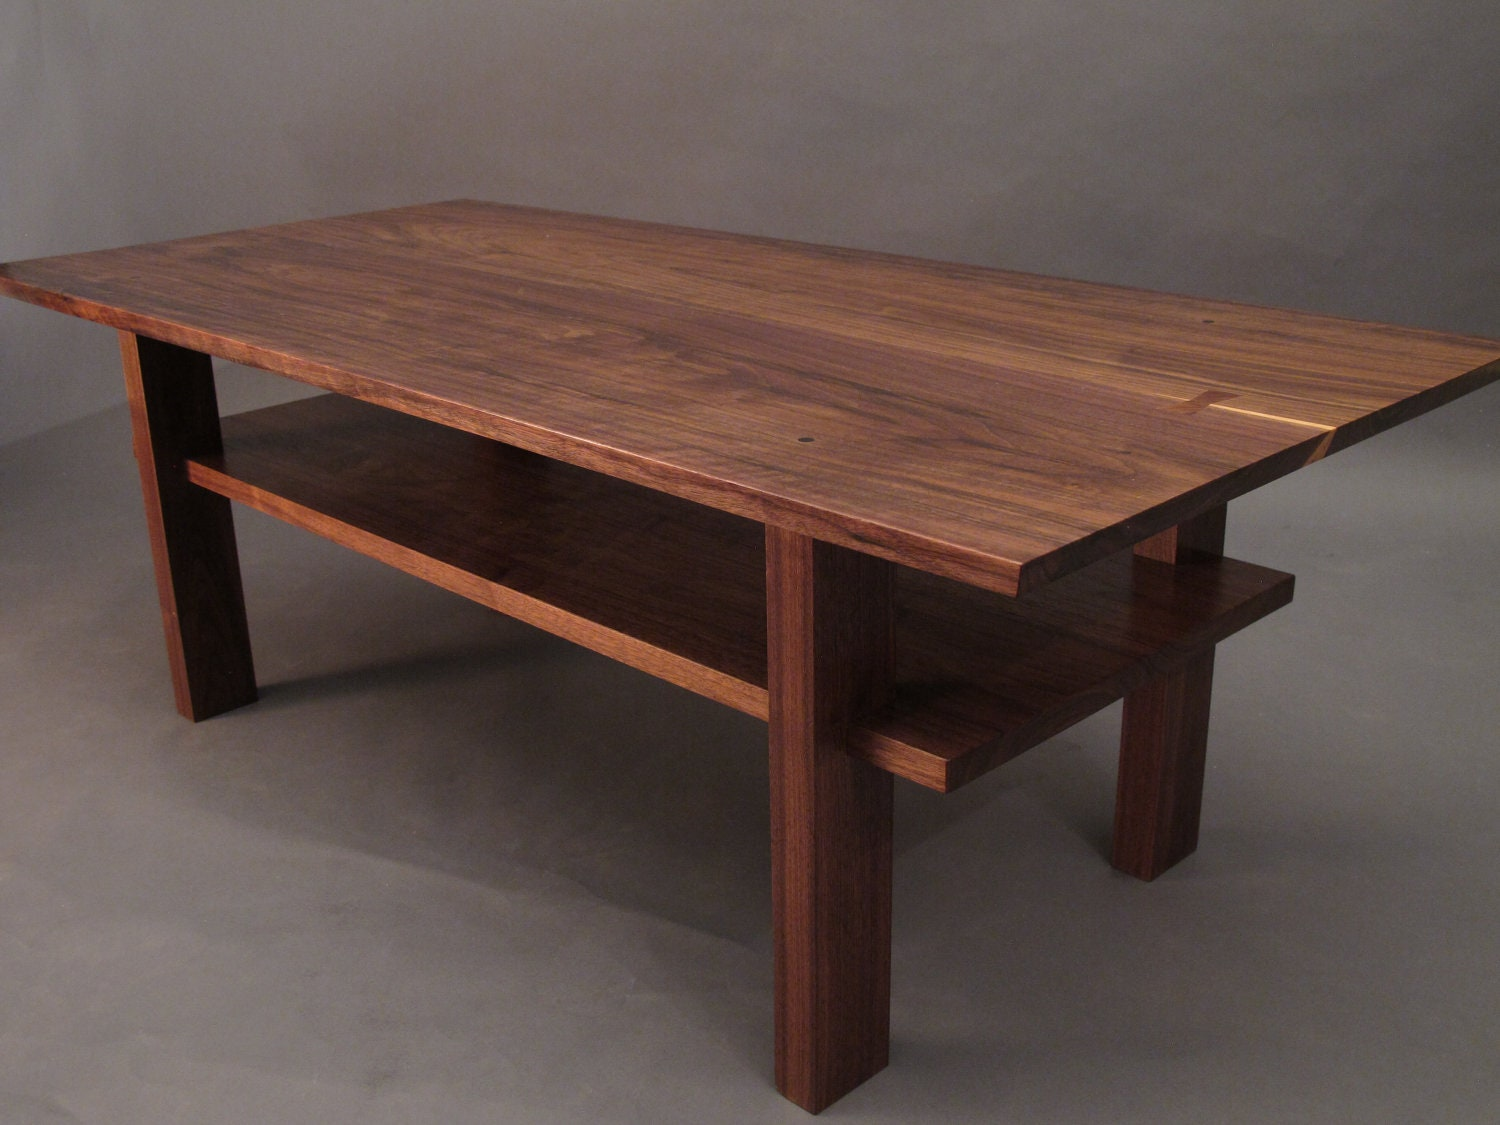 Walnut coffee table small wood tables for living room narrow for Wooden coffee tables images